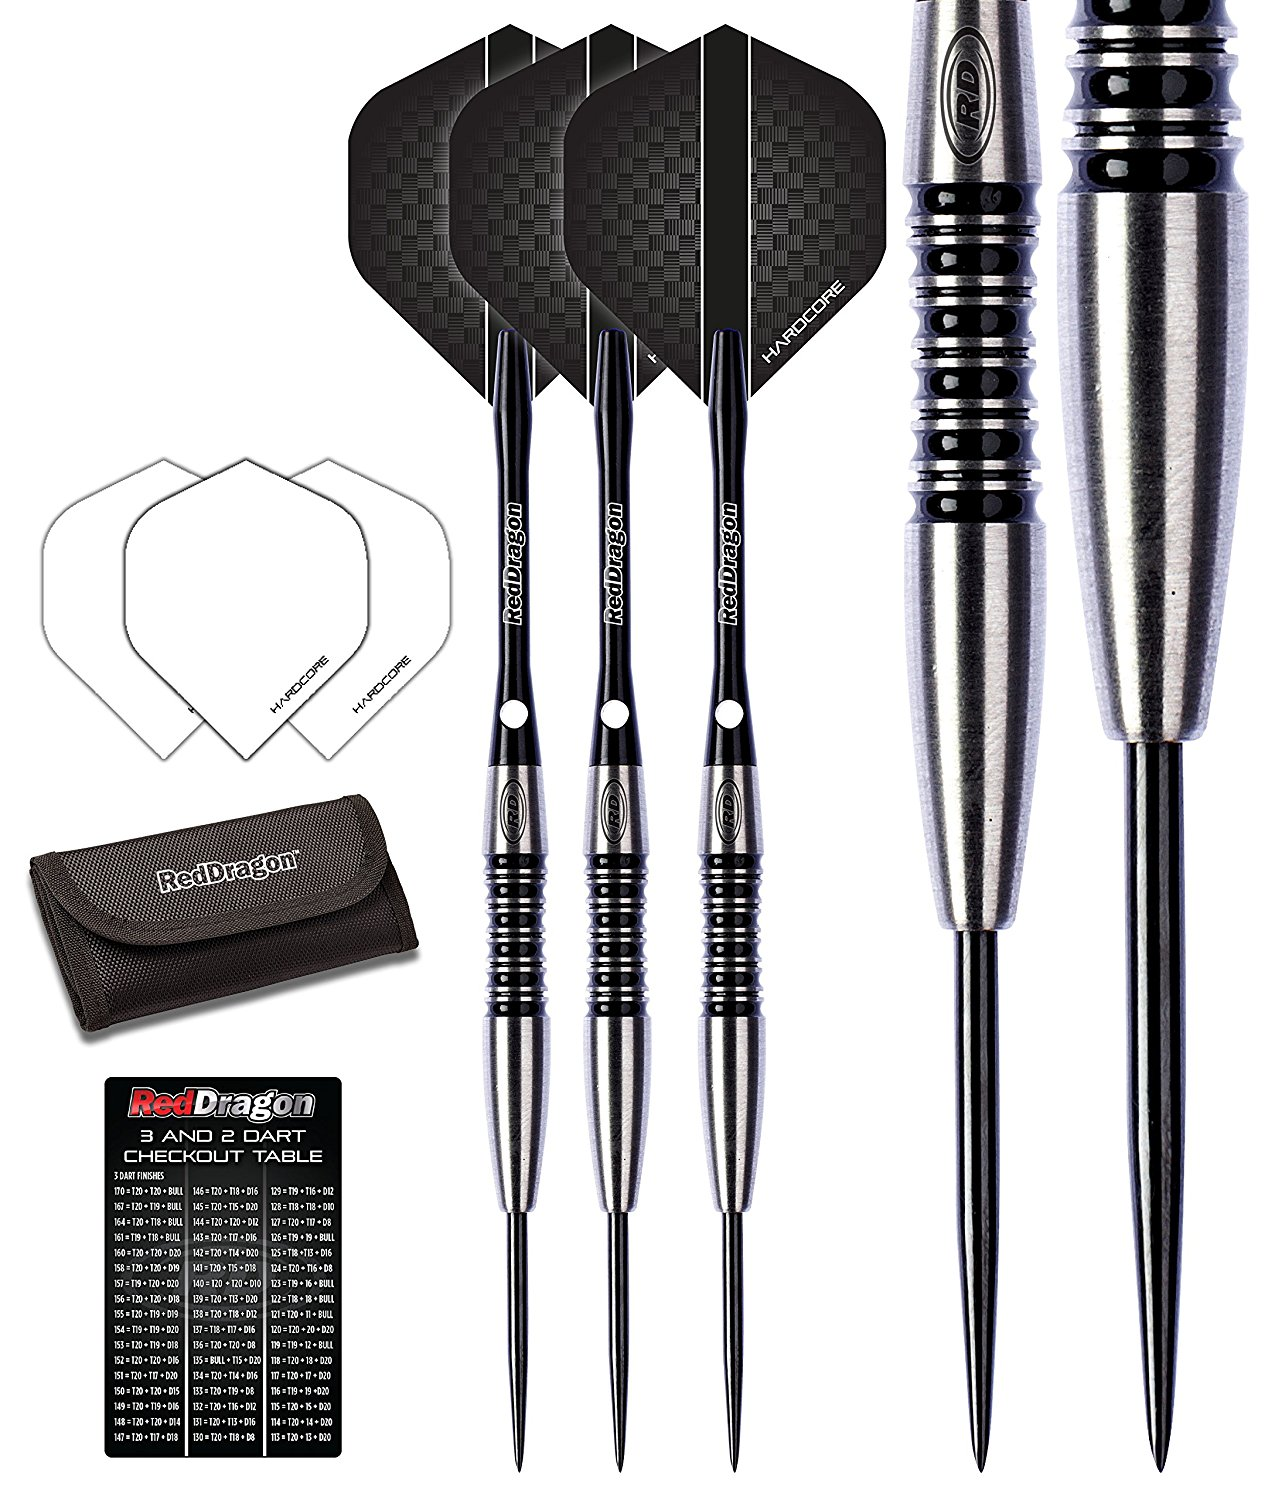 Red Dragon Fusion 1: 24g - 90% Tungsten Steel Darts with Flights, Shafts, Wallet & Red Dragon Checkout Card